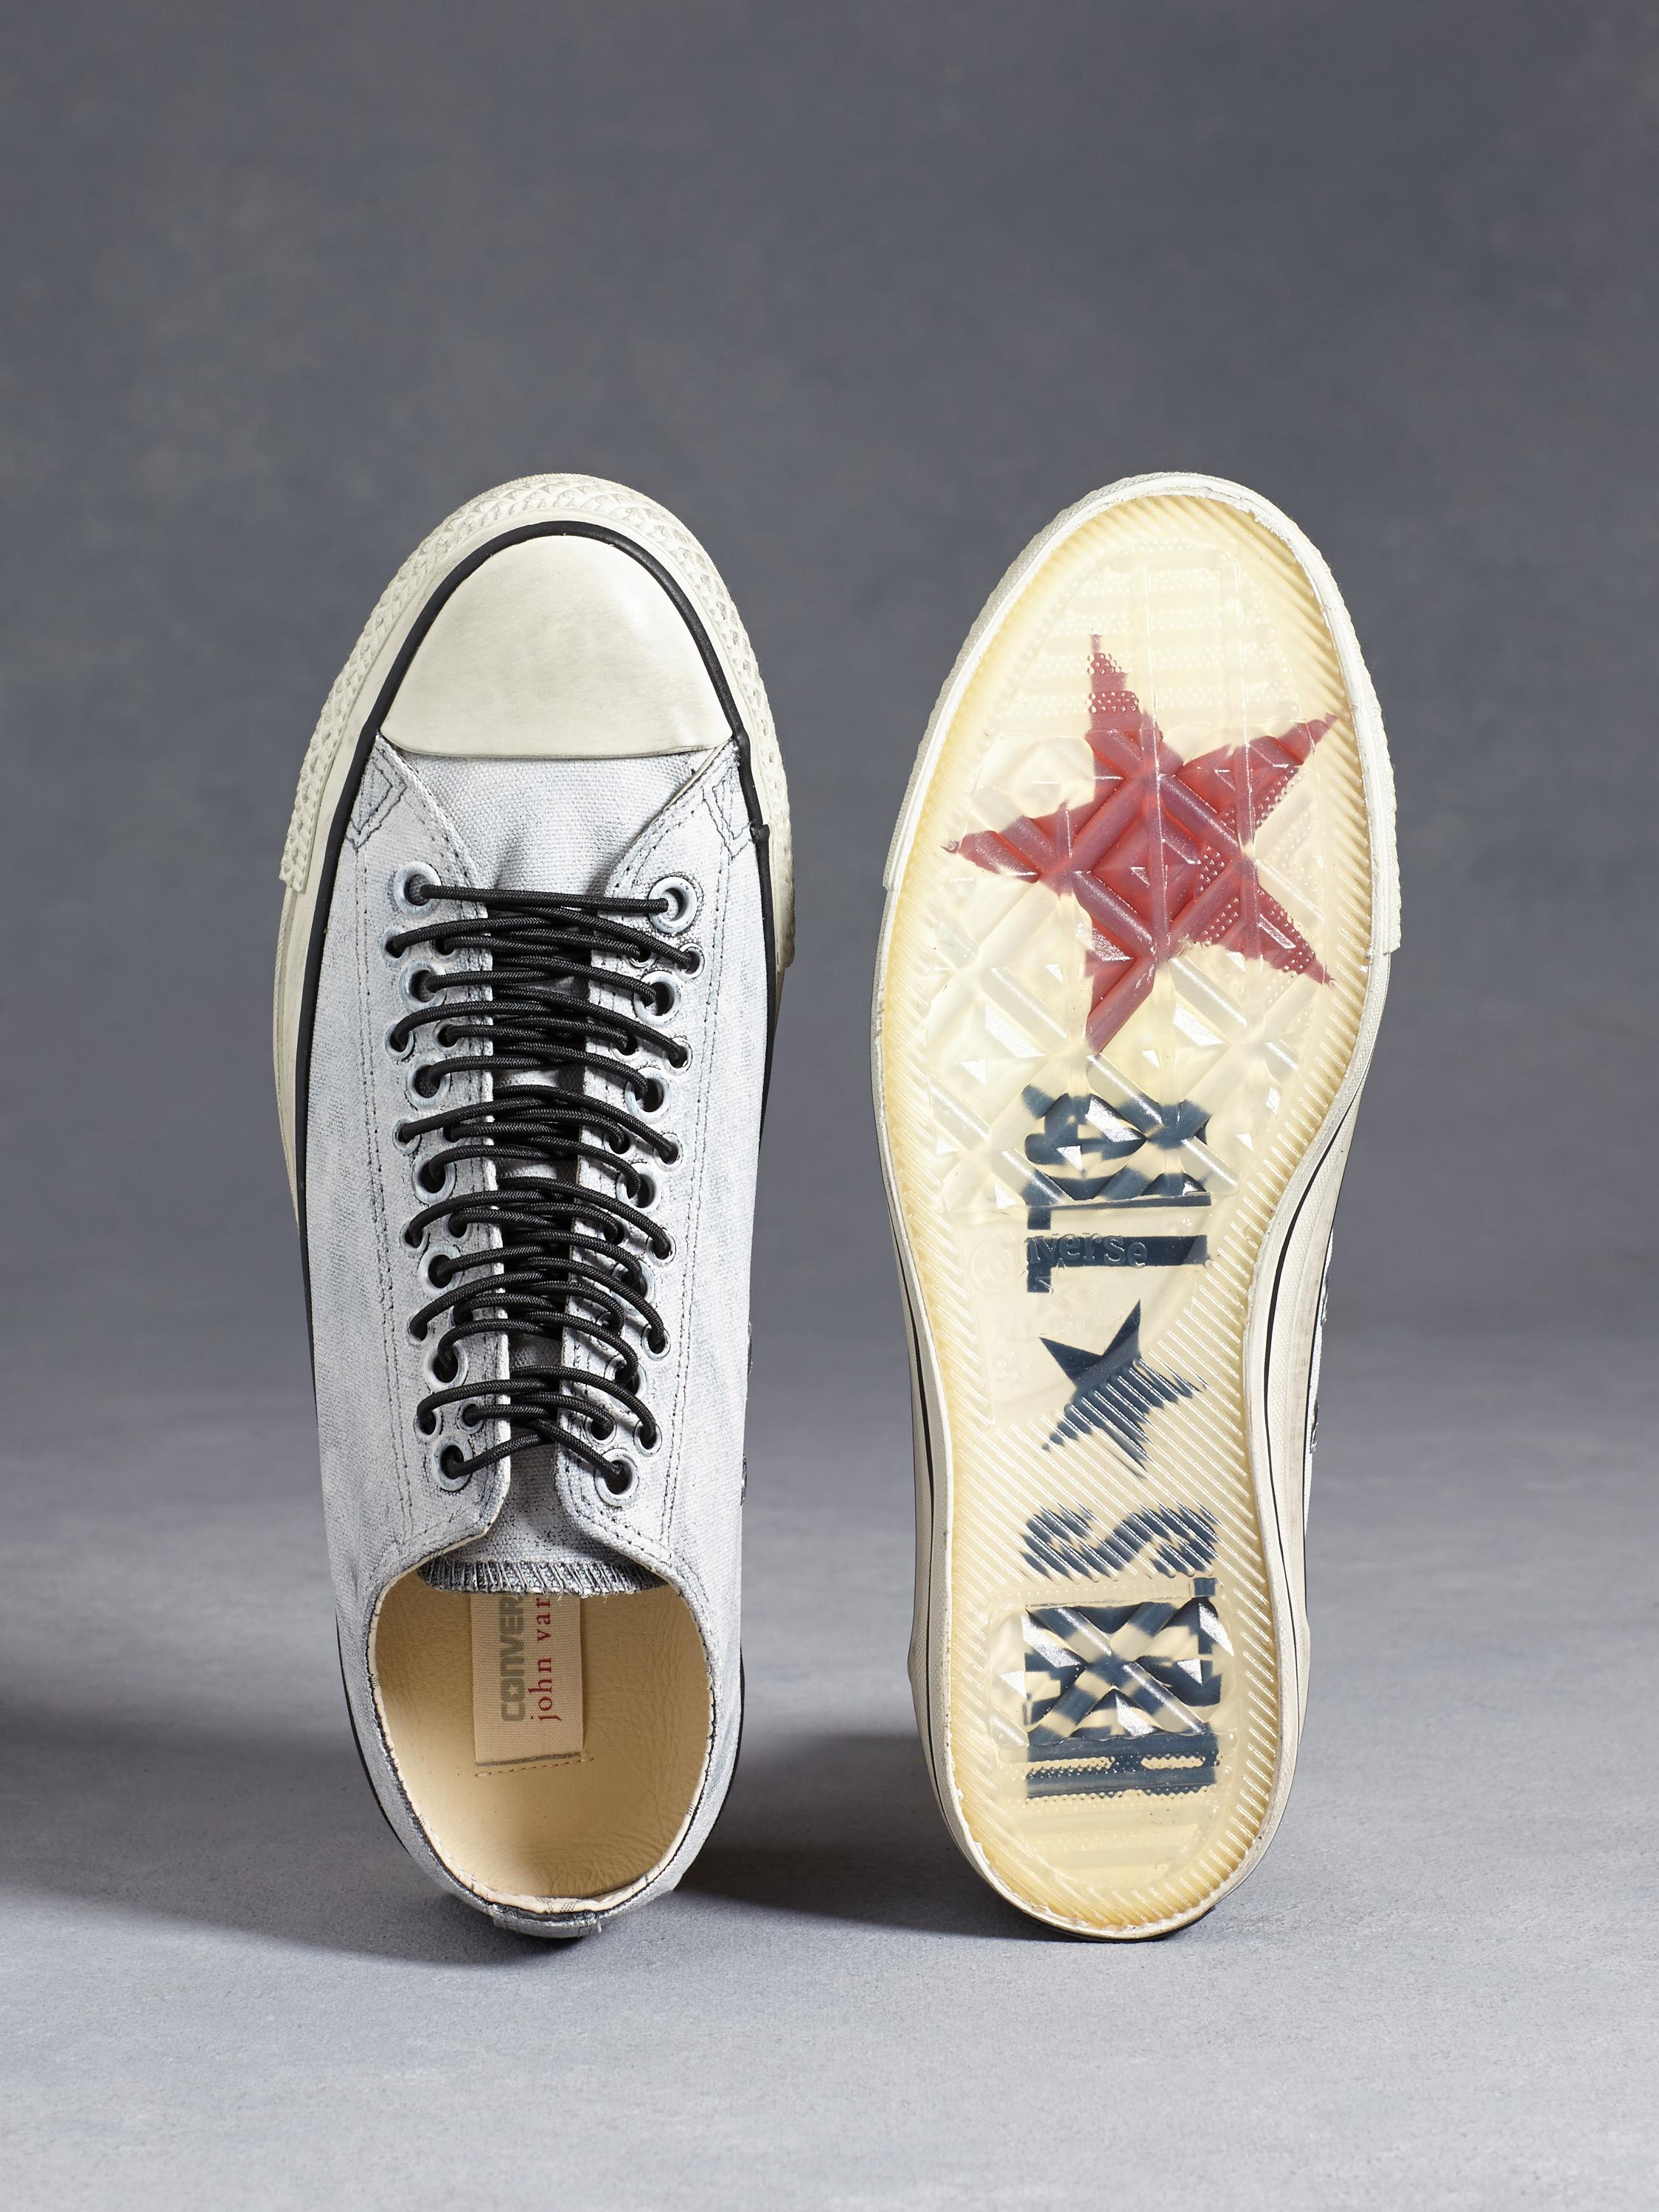 fc83eb727eba Lyst - John Varvatos All Star Multi-eyelet Painted Canvas Chuck ...